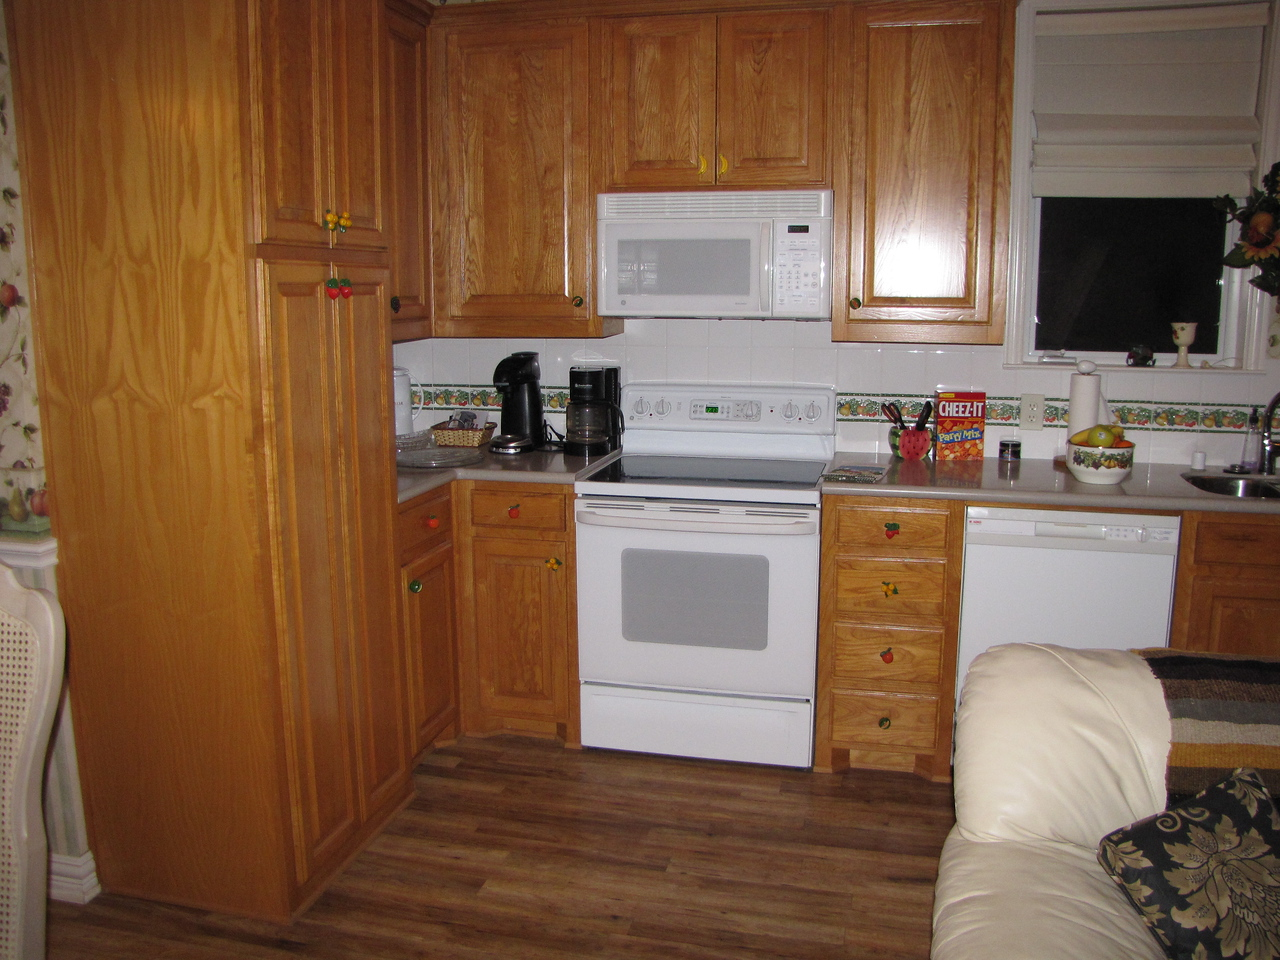 FUlly stocked kitchen! Green Acres Garden B&B - Luxury in the country! Private Cottage on Lake Lavon...